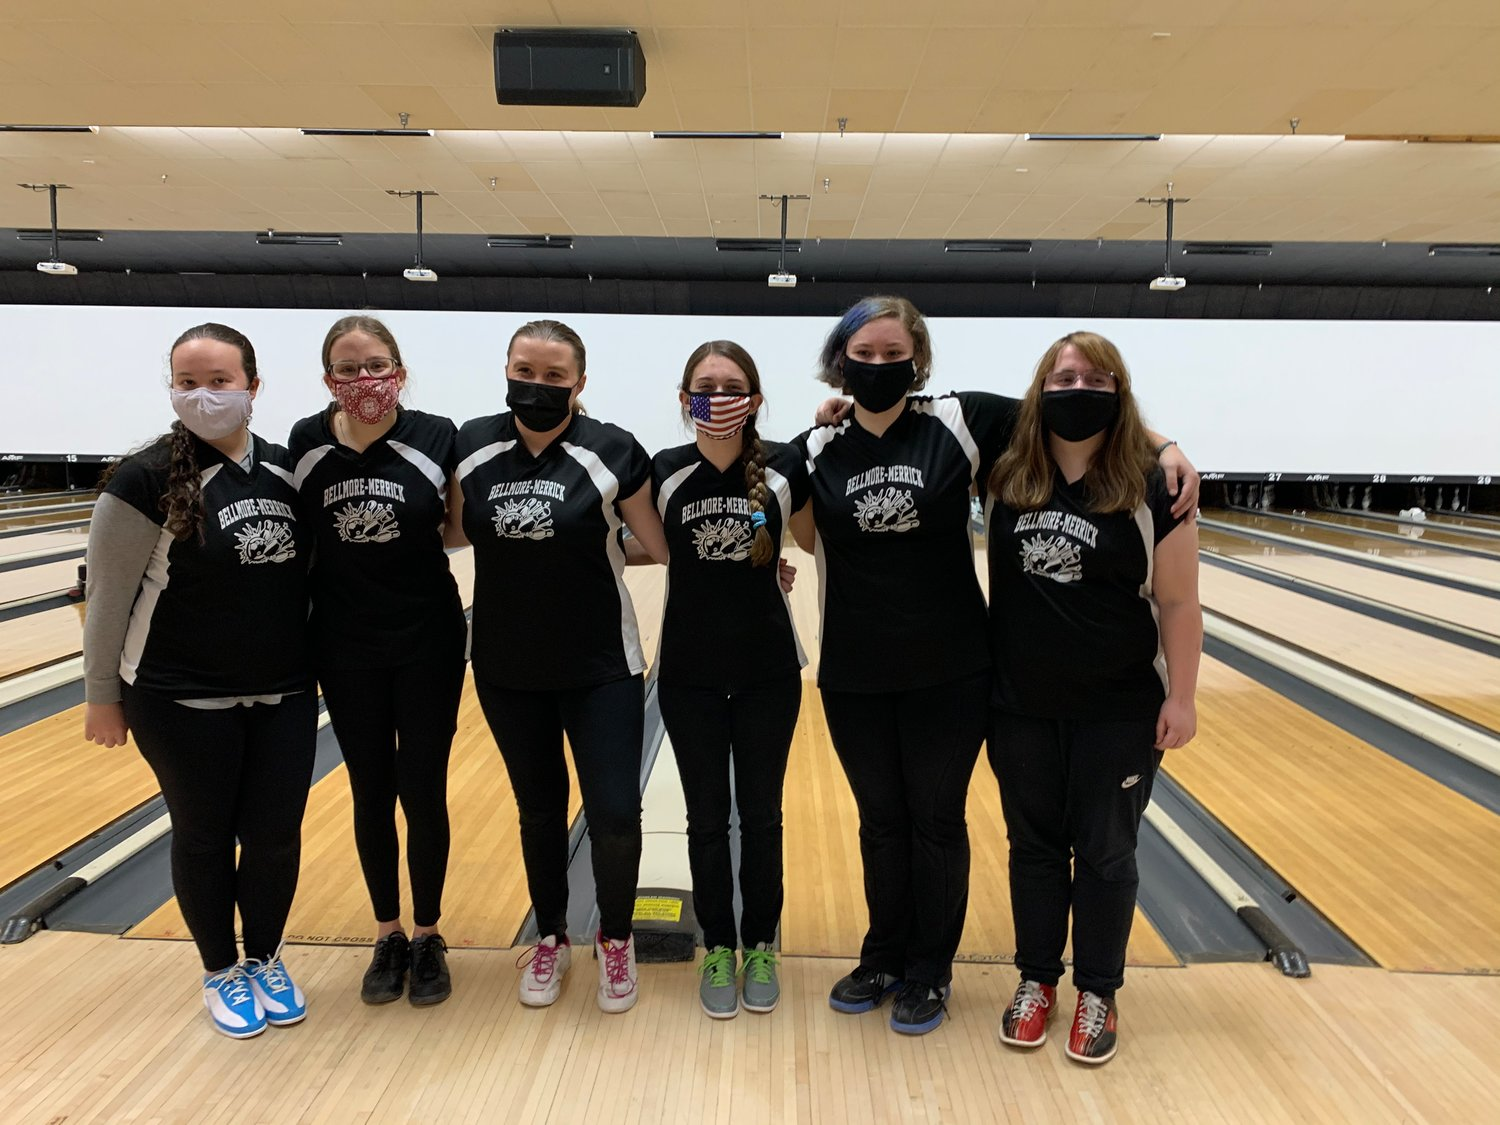 Team members, from left, Beth Delles, Lauren Demarco, Caitlin Snoddy, Marissa Anselmo, Kylie Persampire and Shannon Lisle wore masks and matching t-shirts throughout the recently resumed season.